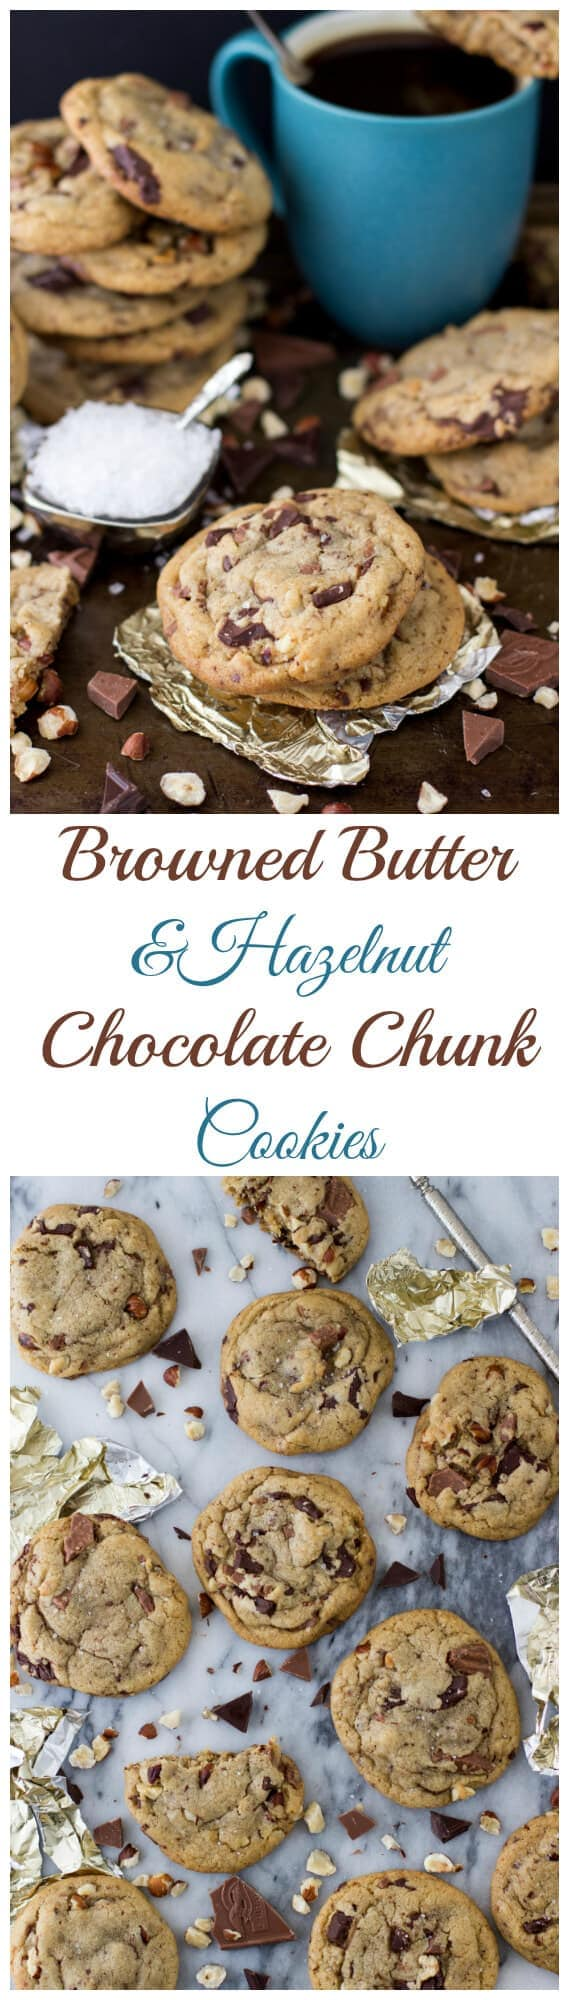 Browned Butter & Hazelnut Chocolate Chip Cookies - Sugar ...